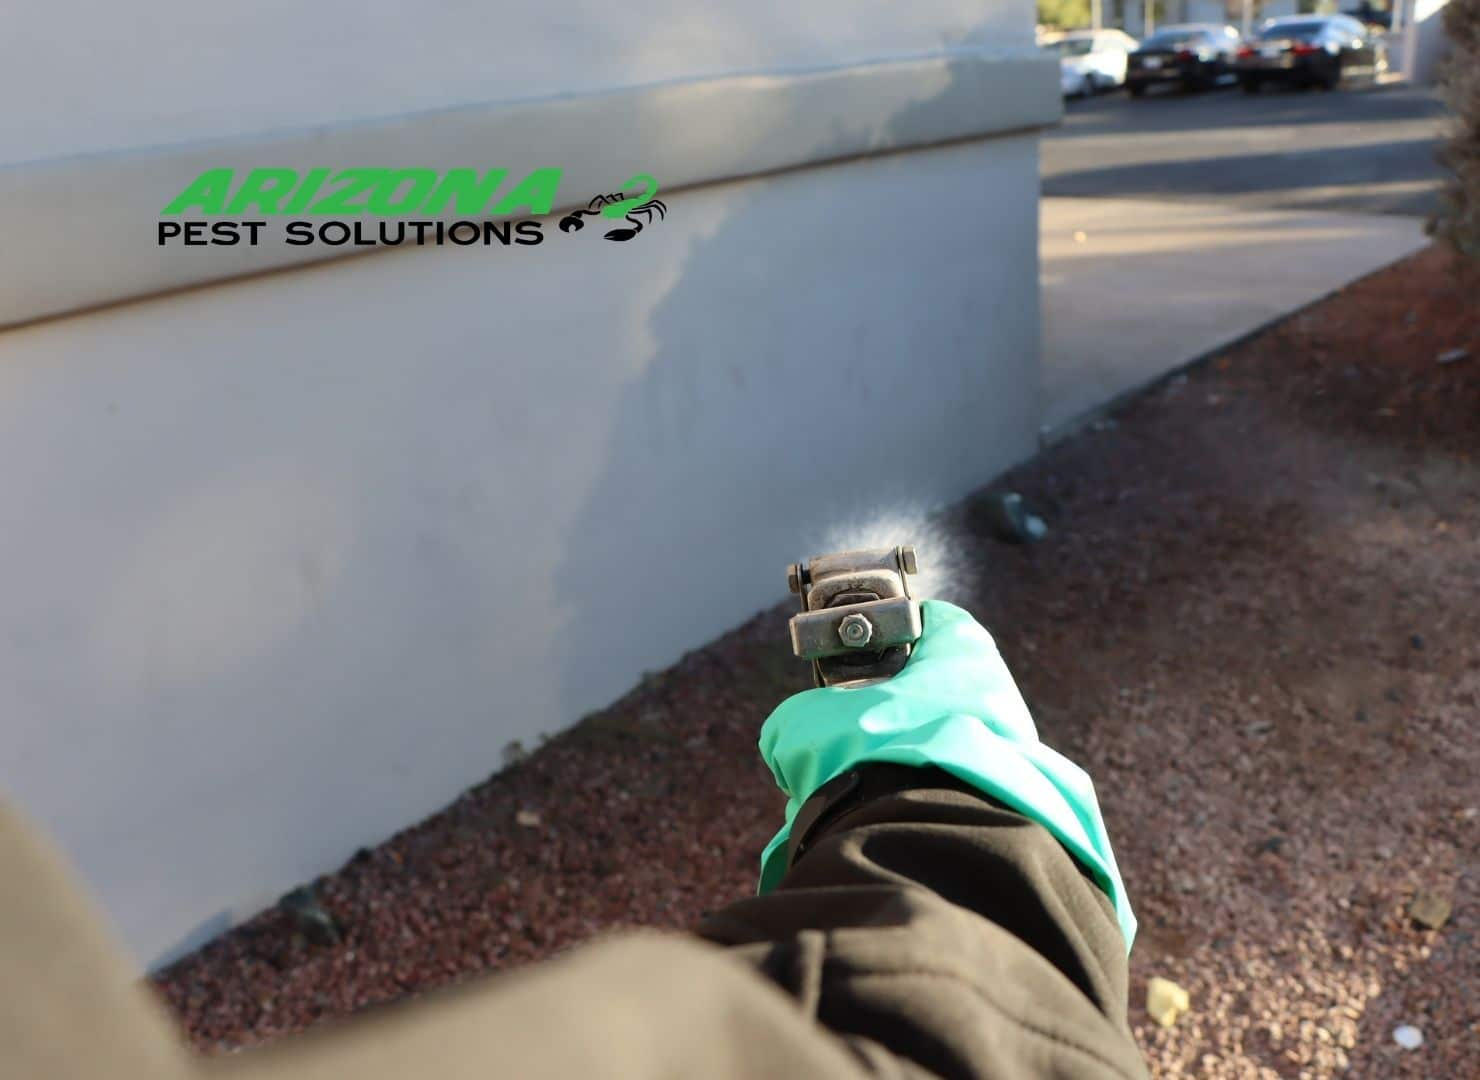 commercial pest control services - arizona pest solutions gilbert az (1)